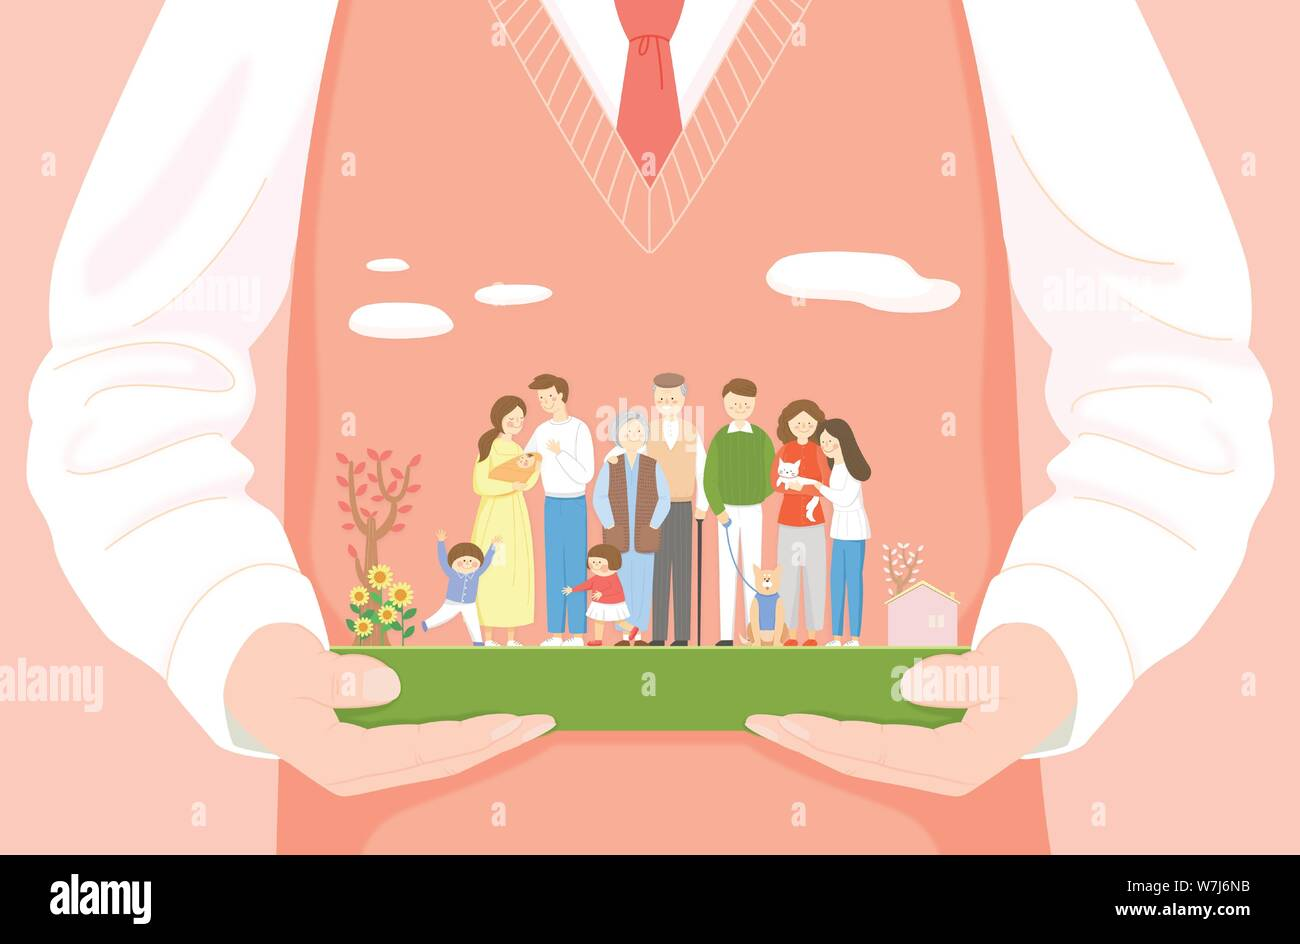 Concept of bible school or camp vector illustration 009 Stock Vector